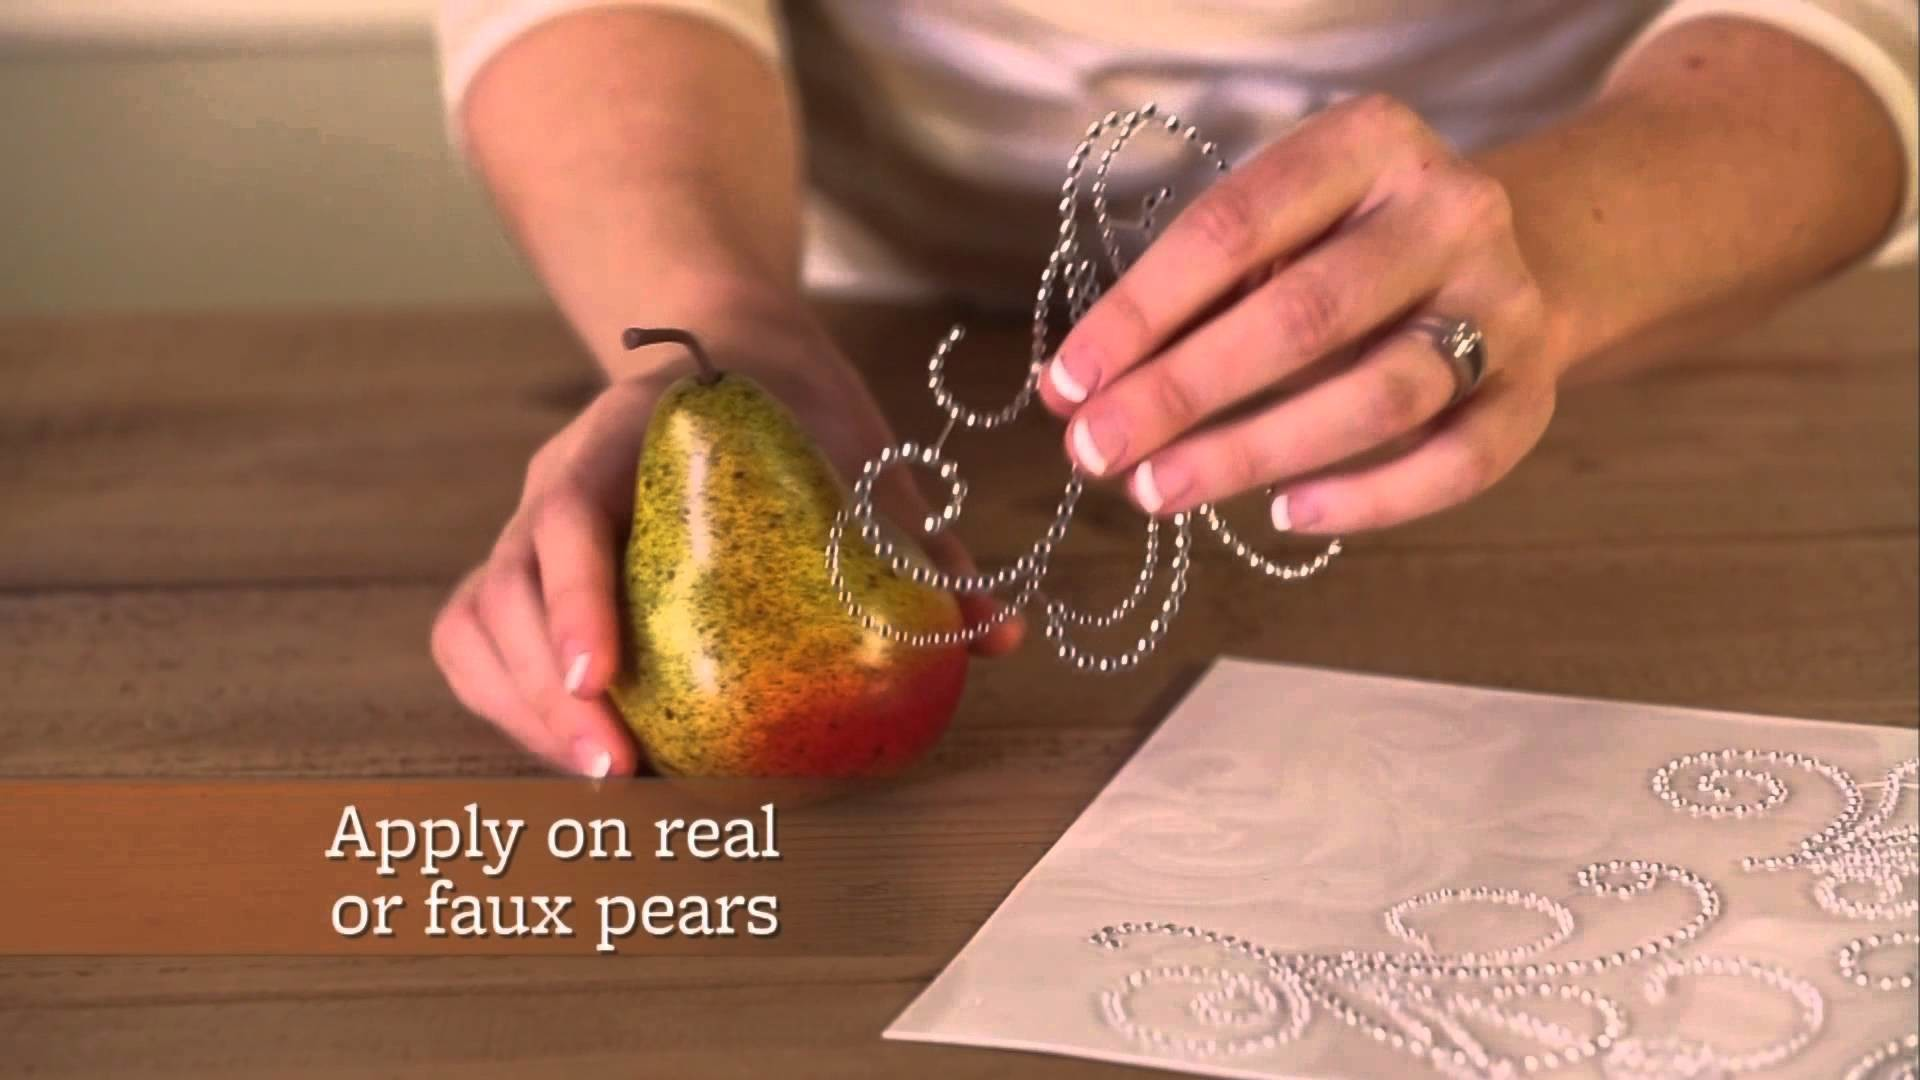 How To Make A Homemade Centerpiece With Fruit